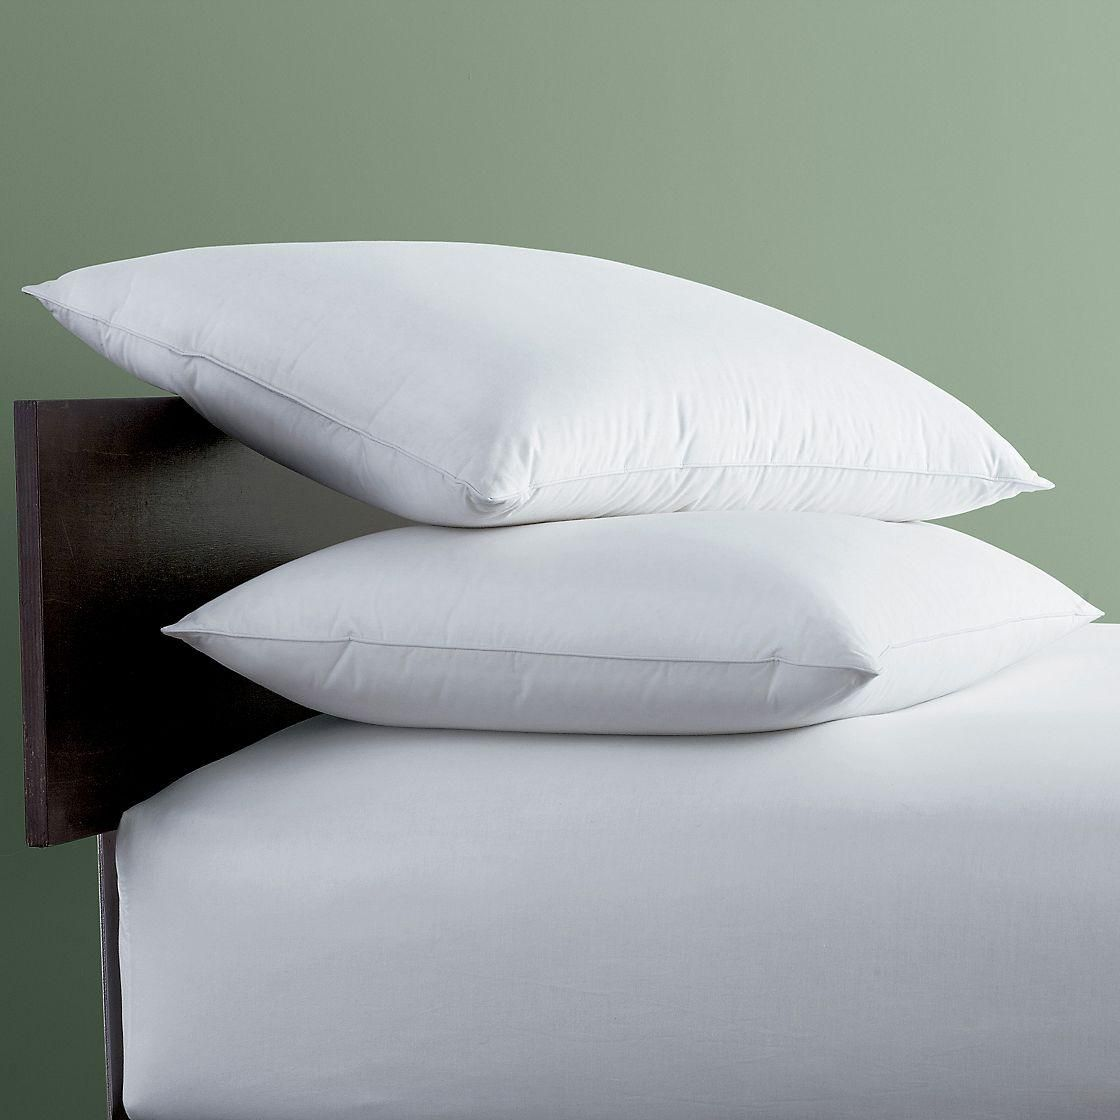 Sleep Position Is A Key Factor In Choosing The Best Pillow For Both Body Alignment And Comfort Fortunately For Consumers Man Pillows Down Pillows Best Pillow